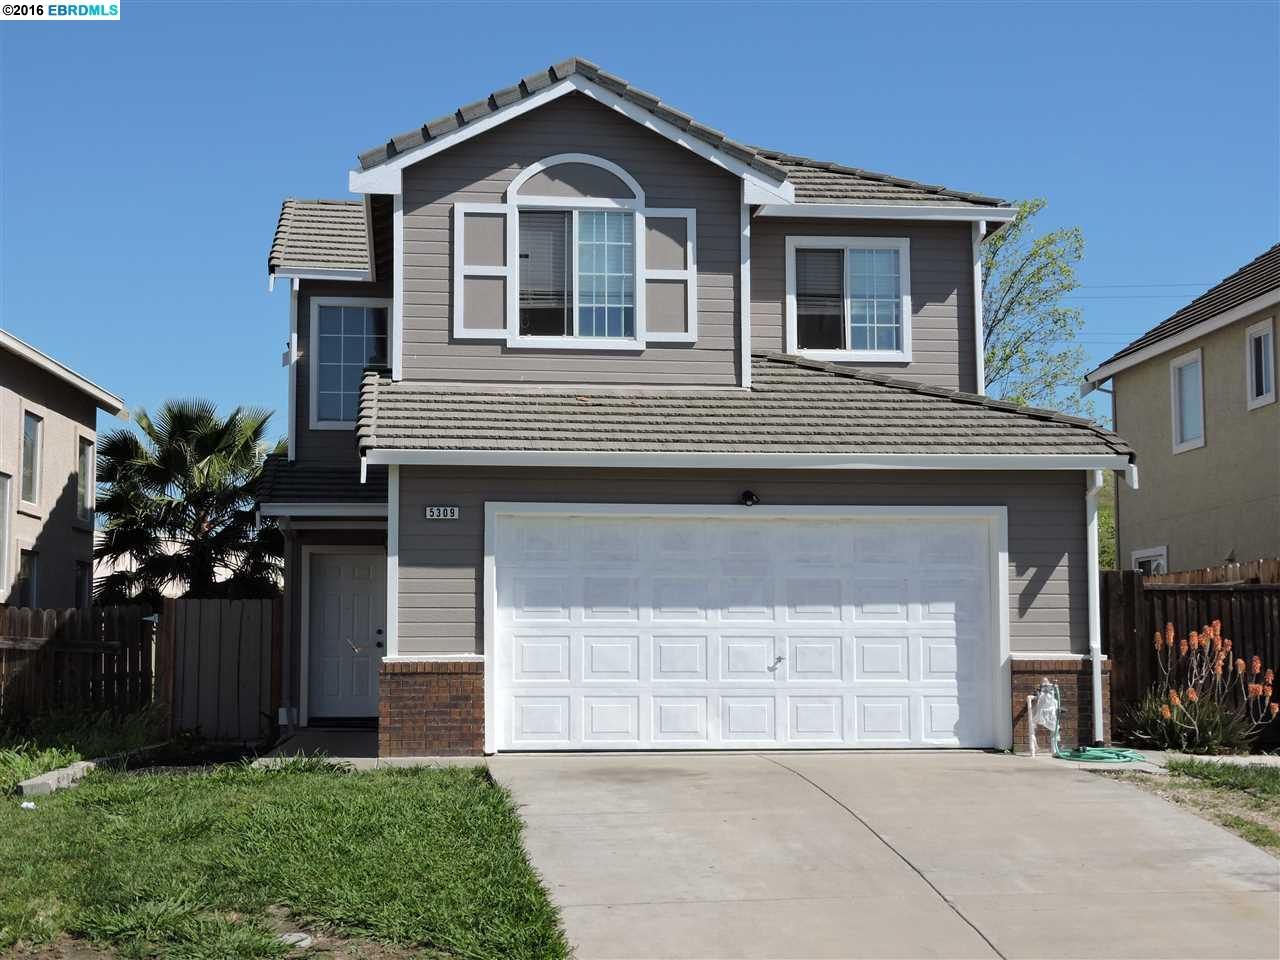 5309 Woodside Way, Antioch, CA